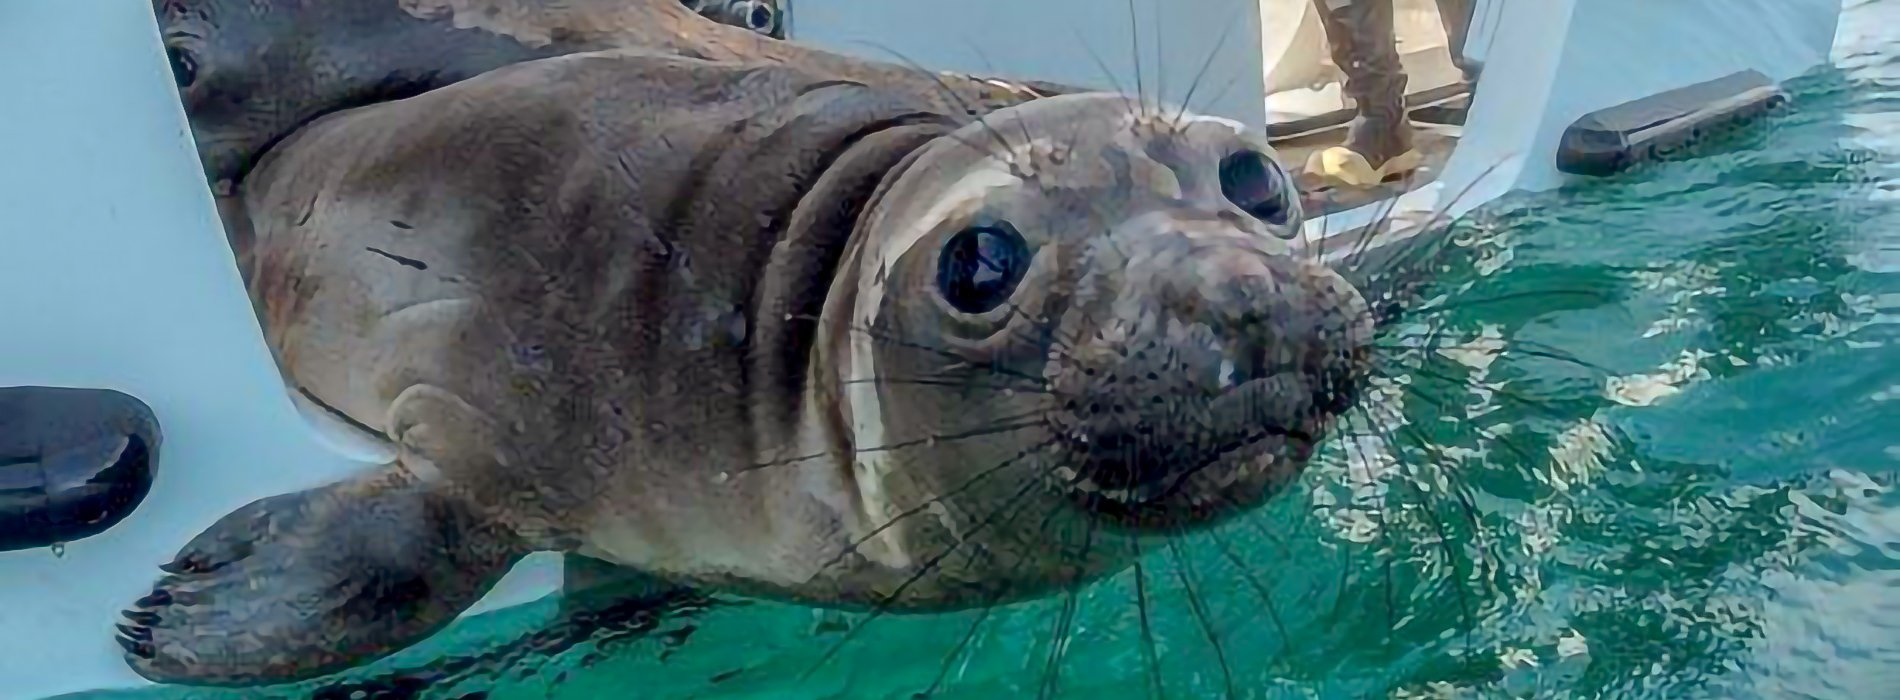 Seal being released from SeaWorld Rescue